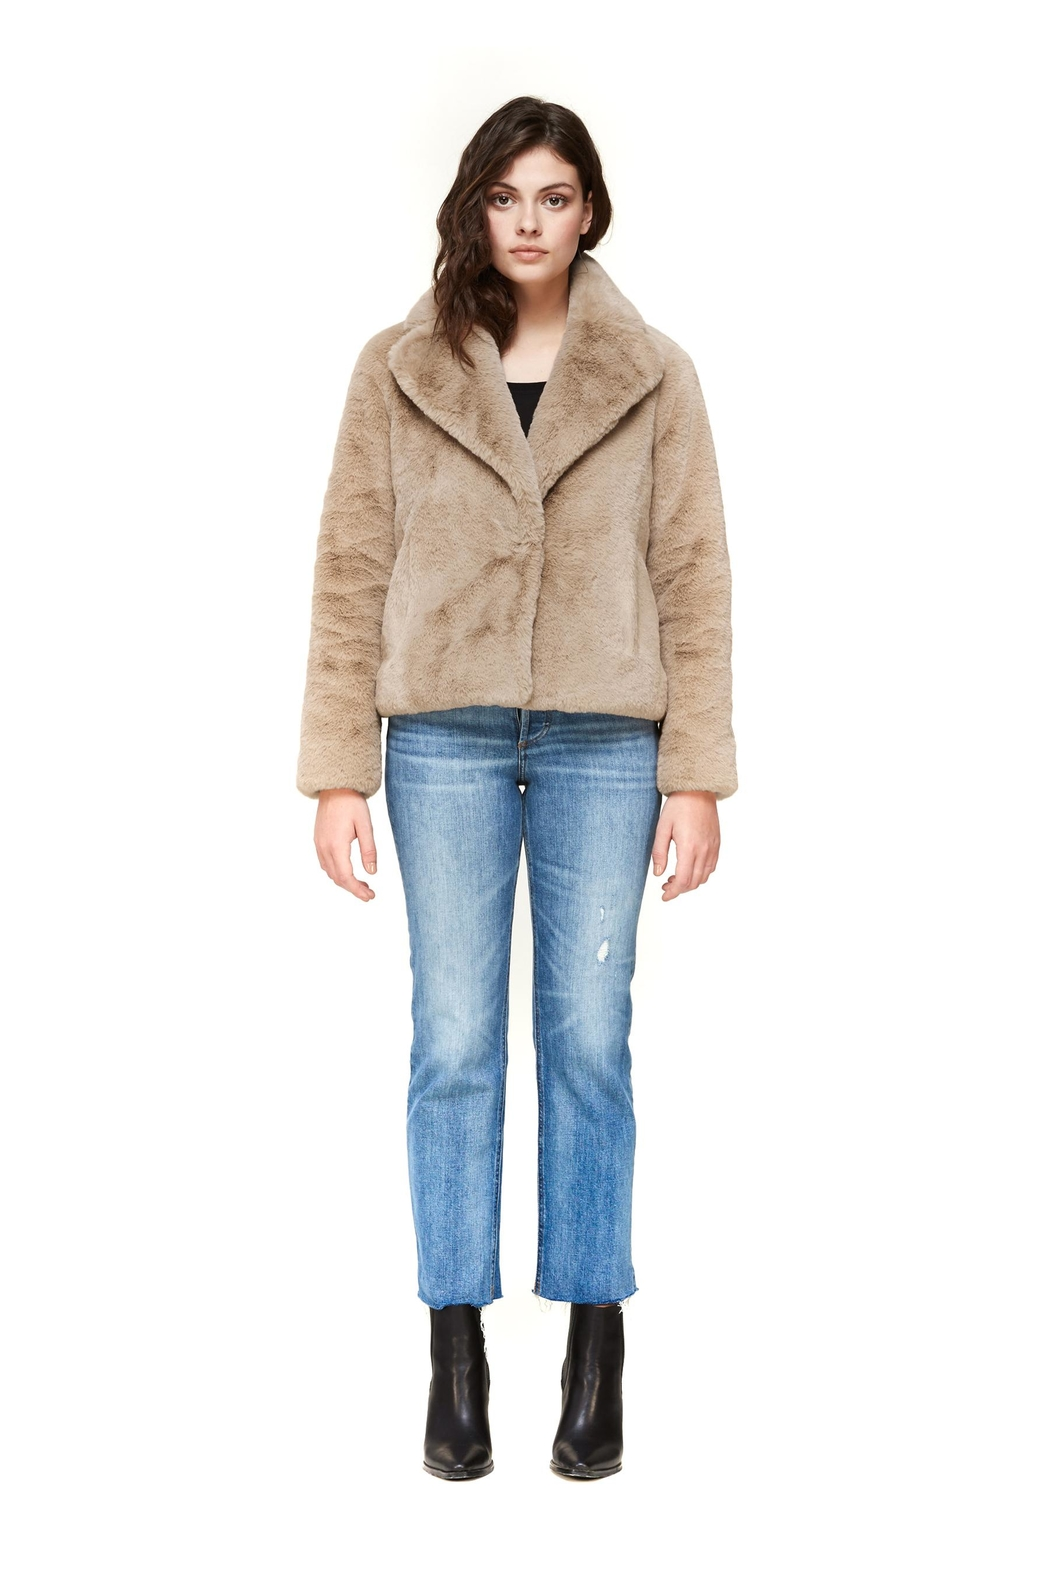 Soia & Kyo Emanuela Relaxed-Fit Jacket - Main Image